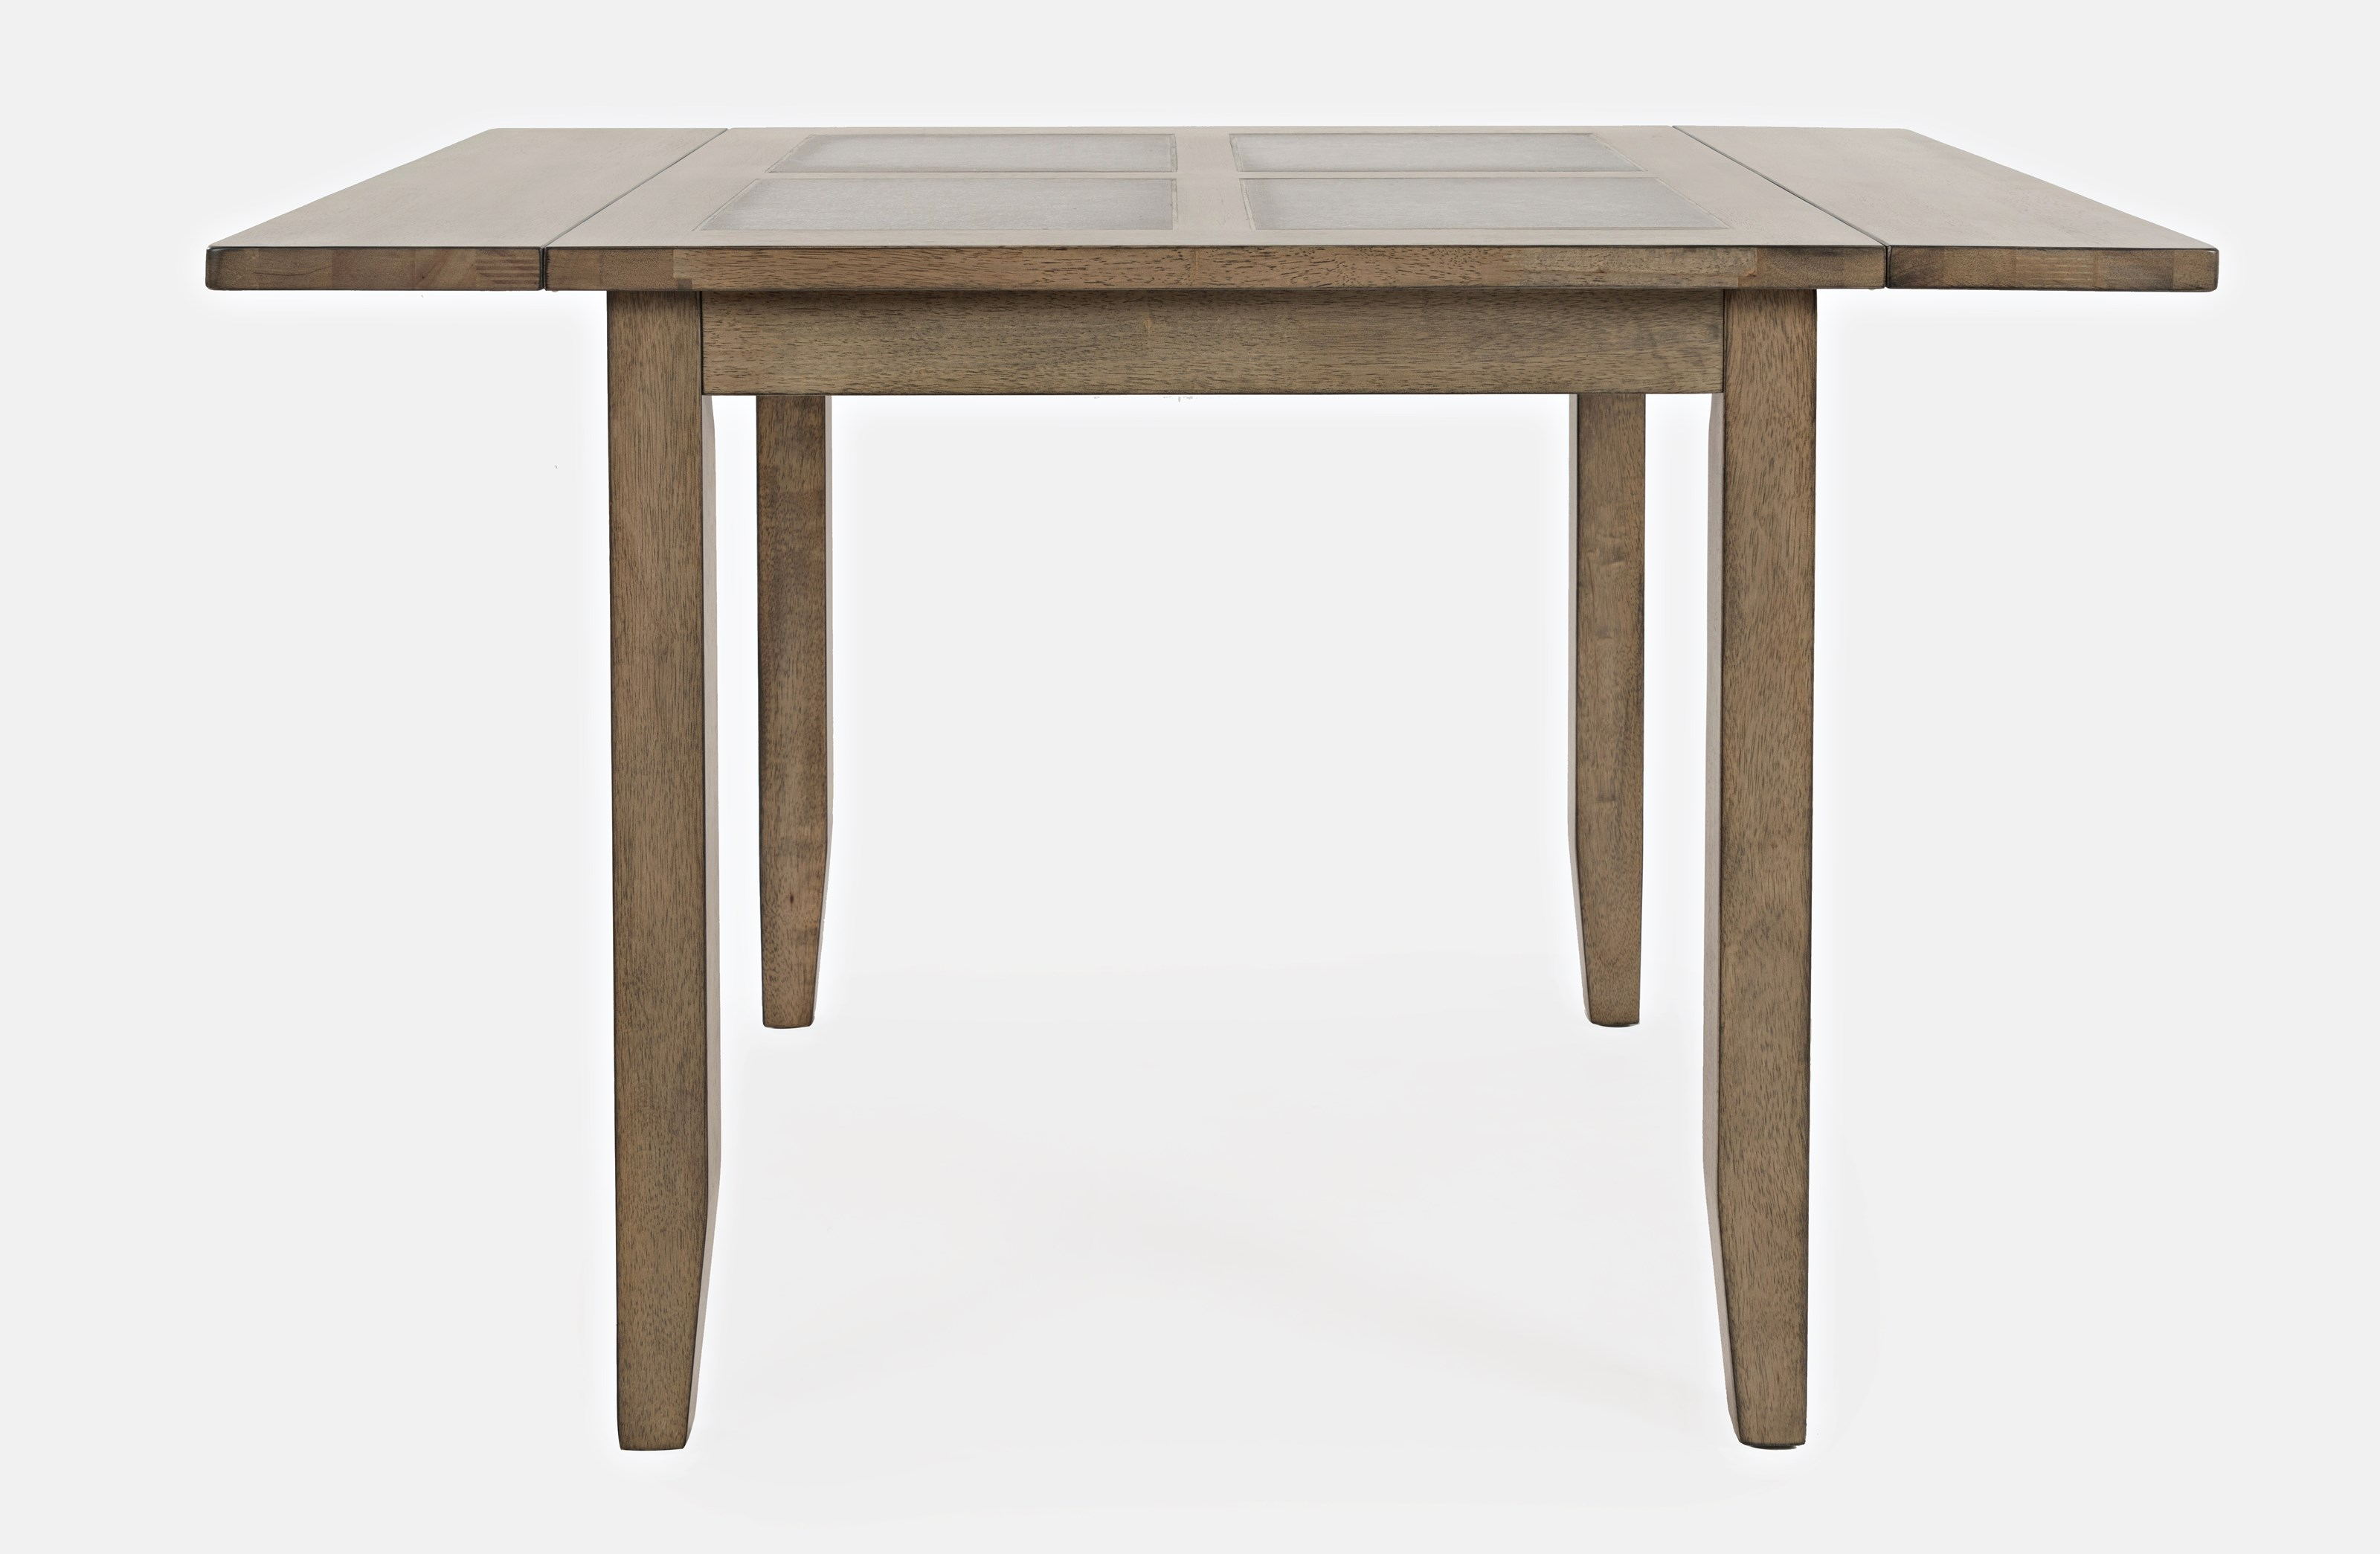 Dropleaf Tile Top Table